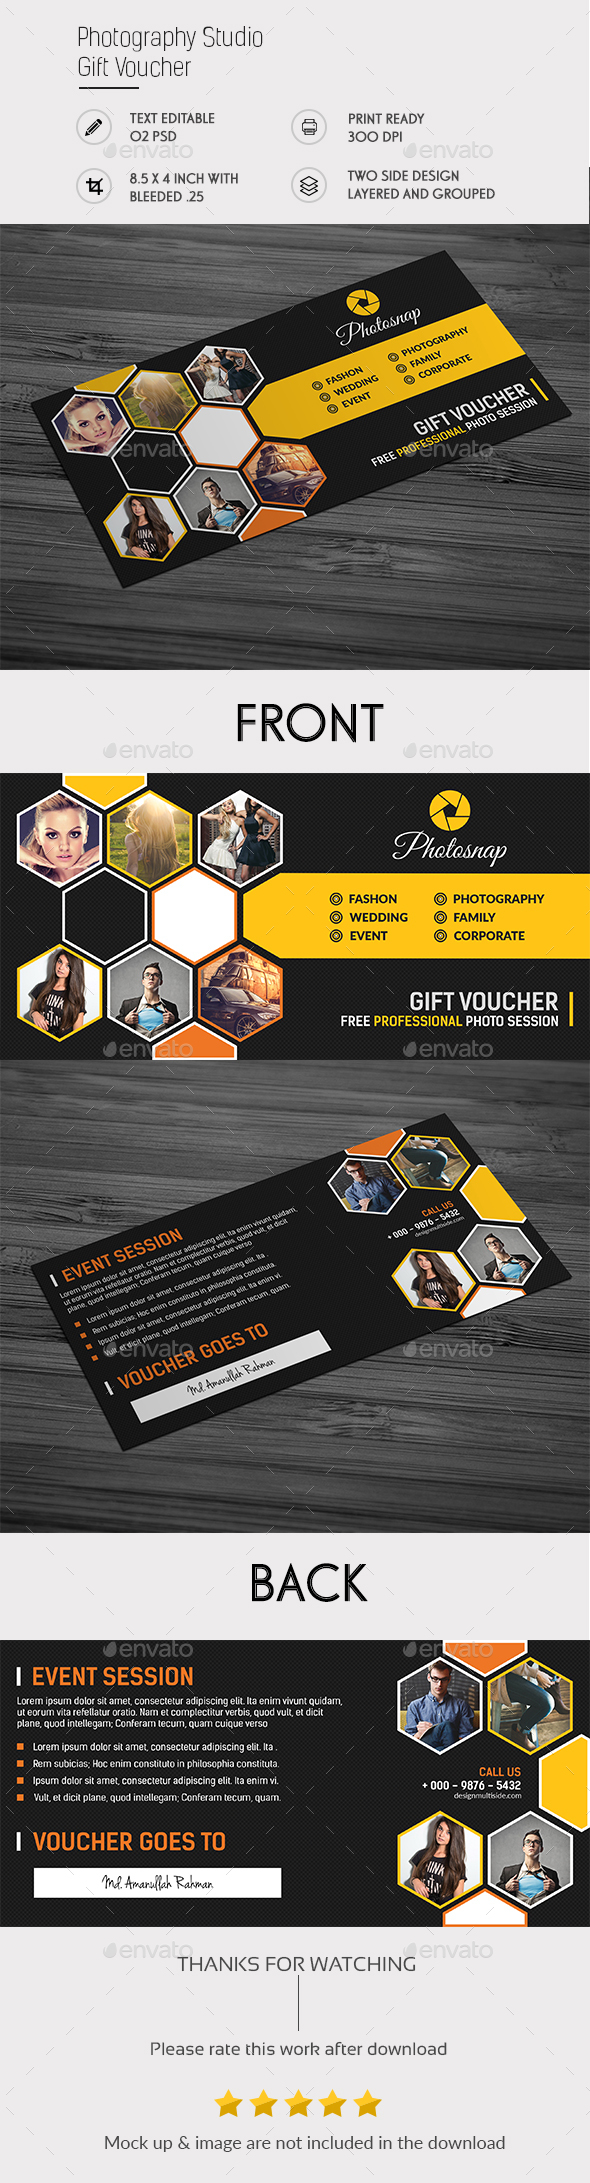 Photography Studio Gift Voucher - Cards & Invites Print Templates